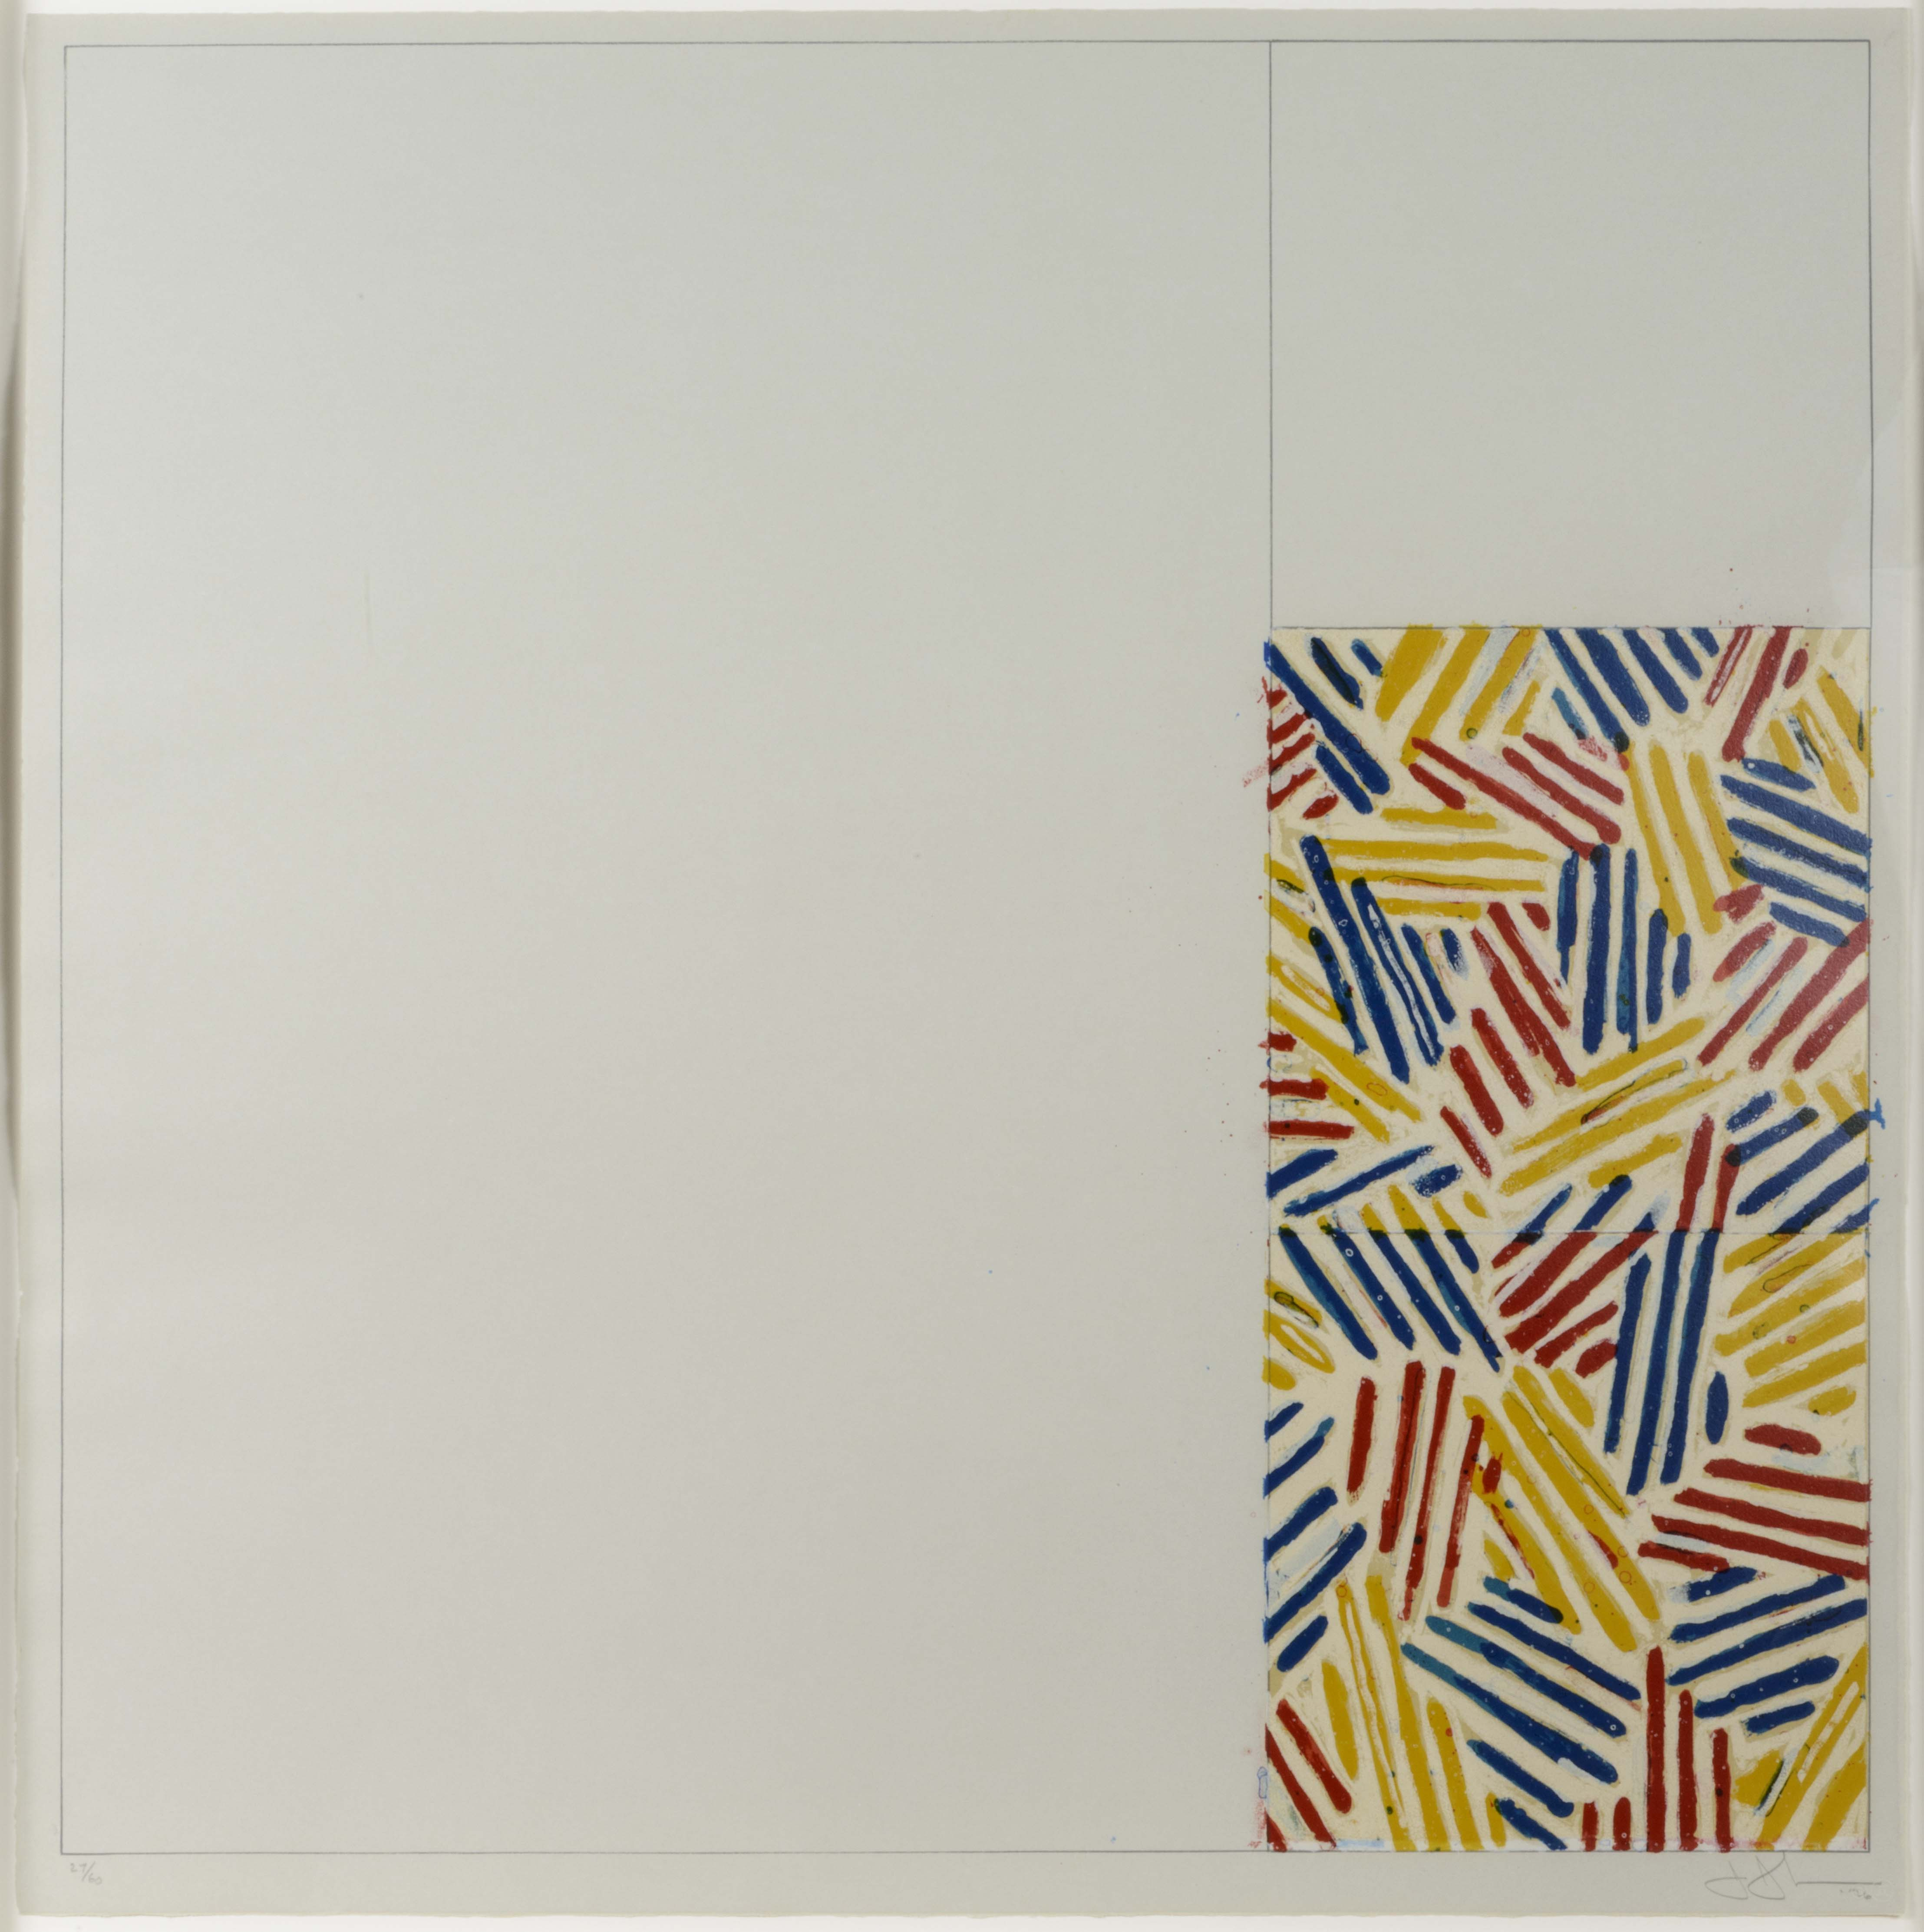 #4 (After Untitled 1975)